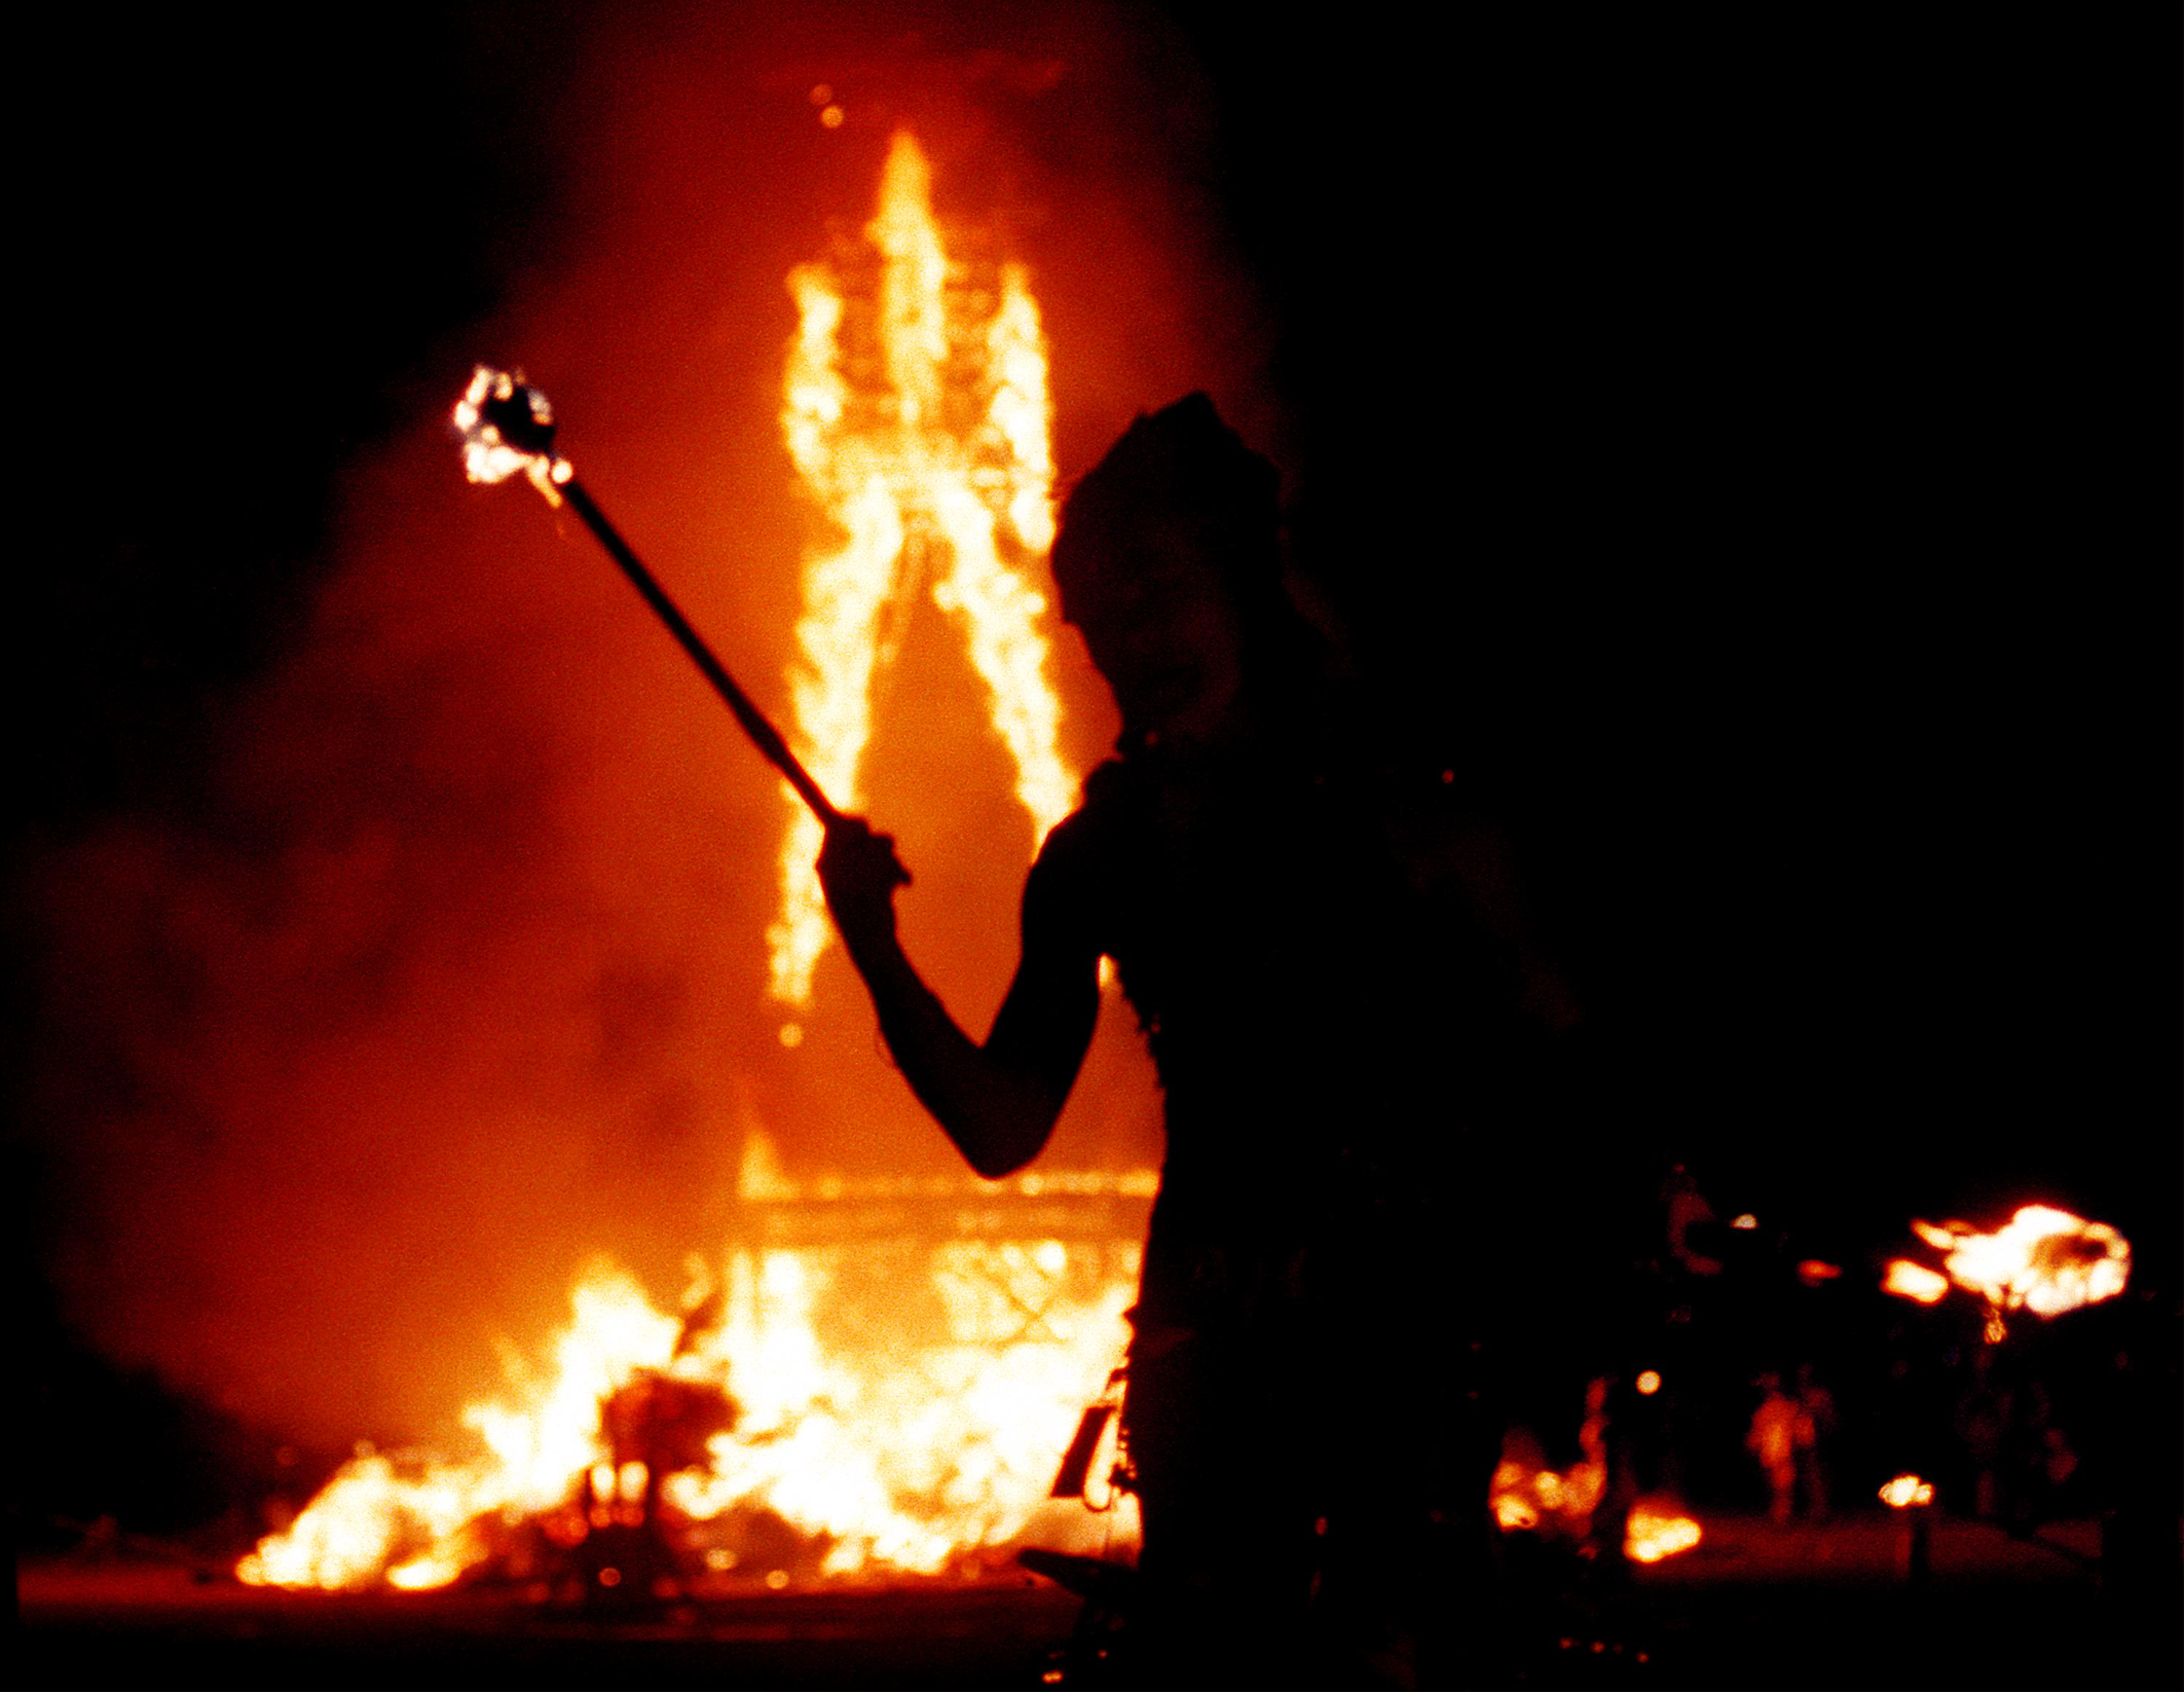 A dancer juggles fire as a 52-foot tall wooden man as it goes up in flames September 2, 2000 during the15th annual Burning Man festival in the Black Rock Desert near Gerlach, Nevada.